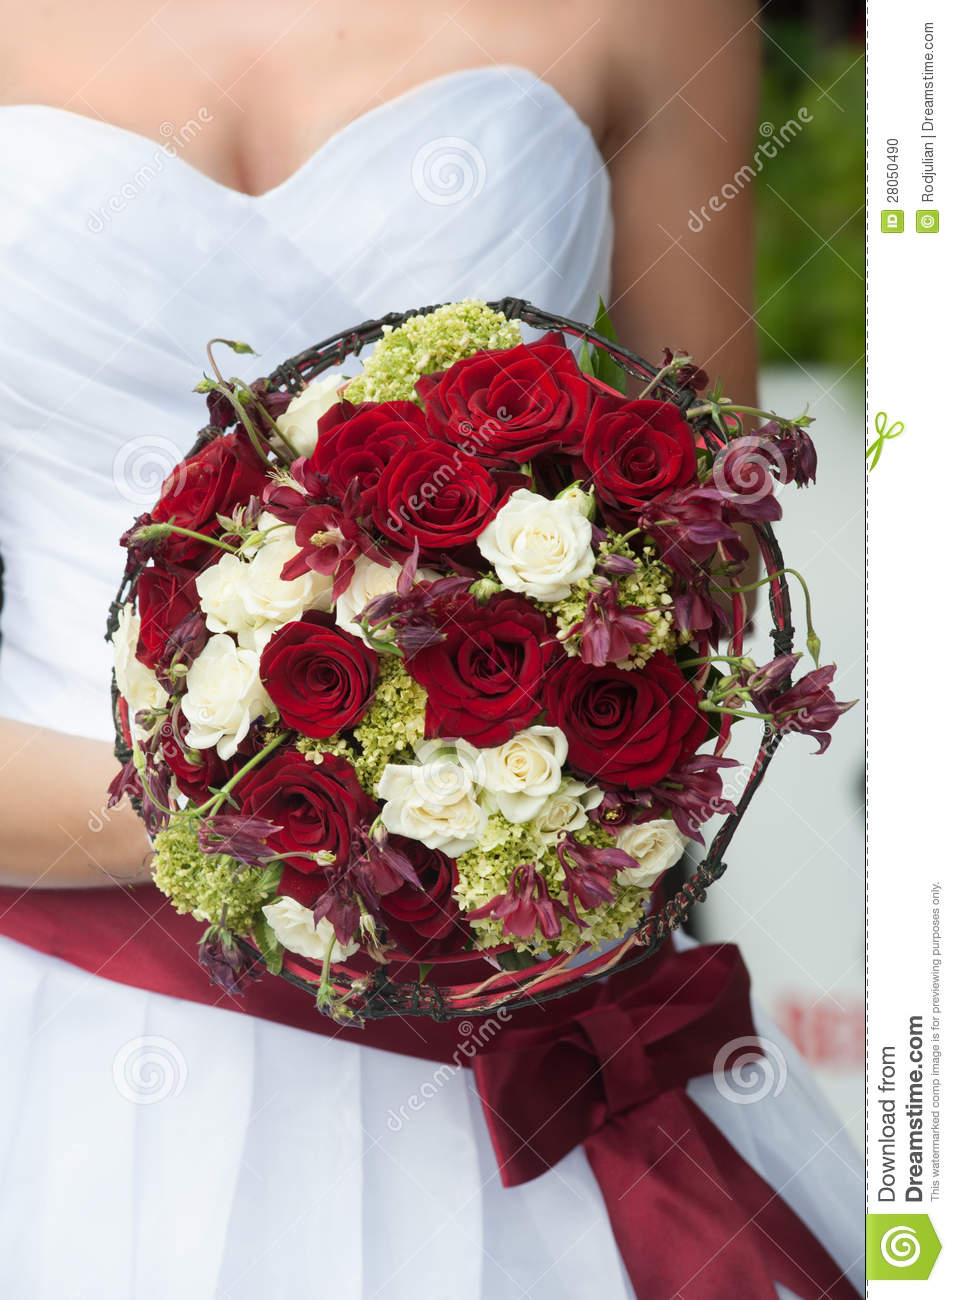 Wedding Bouquet With Red And White Roses Stock Photo Image Of